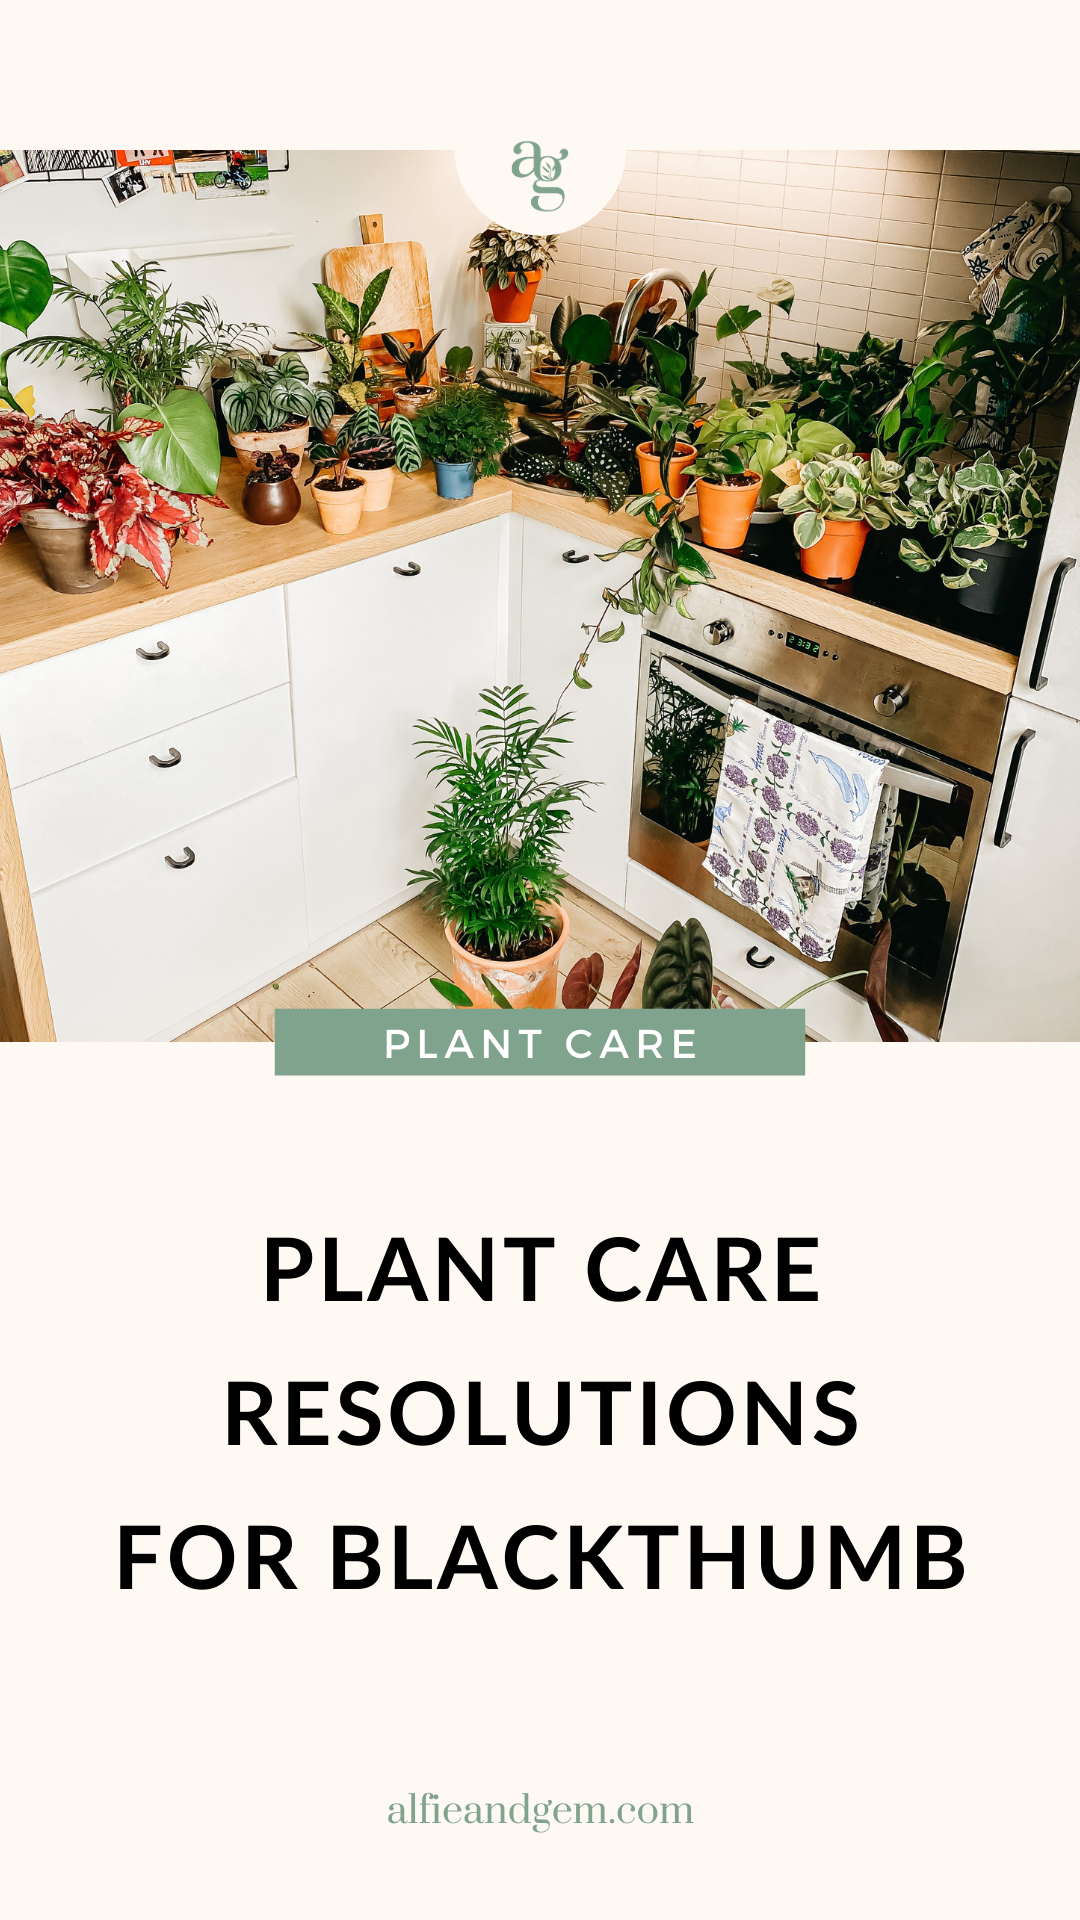 New year plant care resolutions for new plant parents and blackthumb